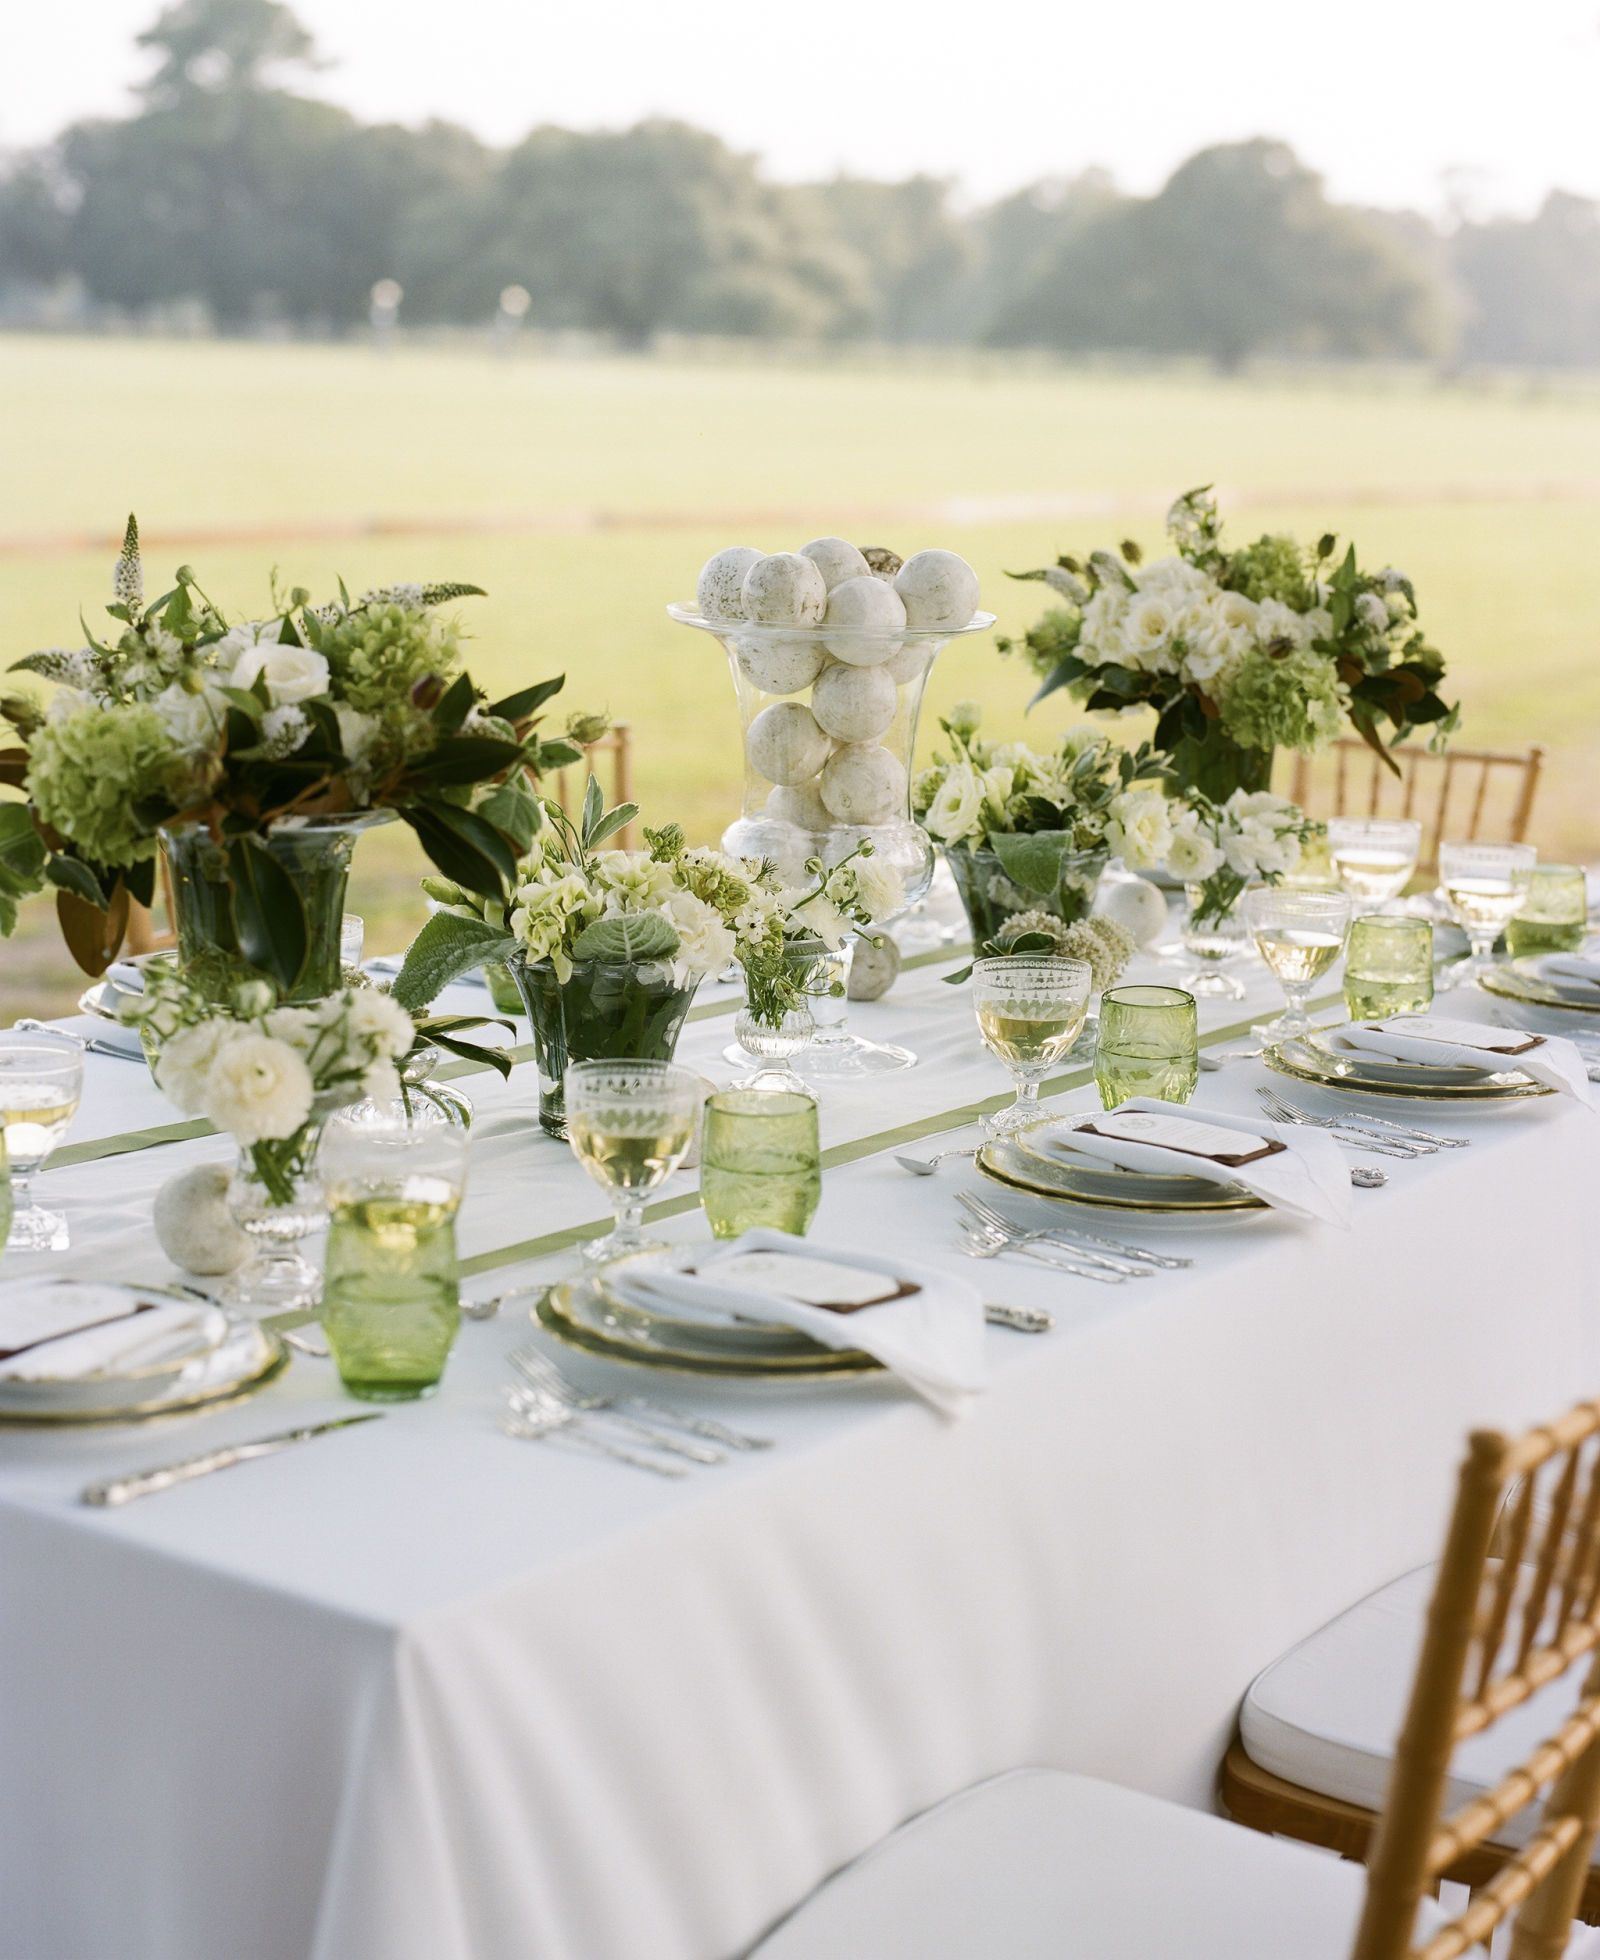 25 Gorgeous Spring Wedding Tablescapes Table DecorationsTable CenterpiecesWedding